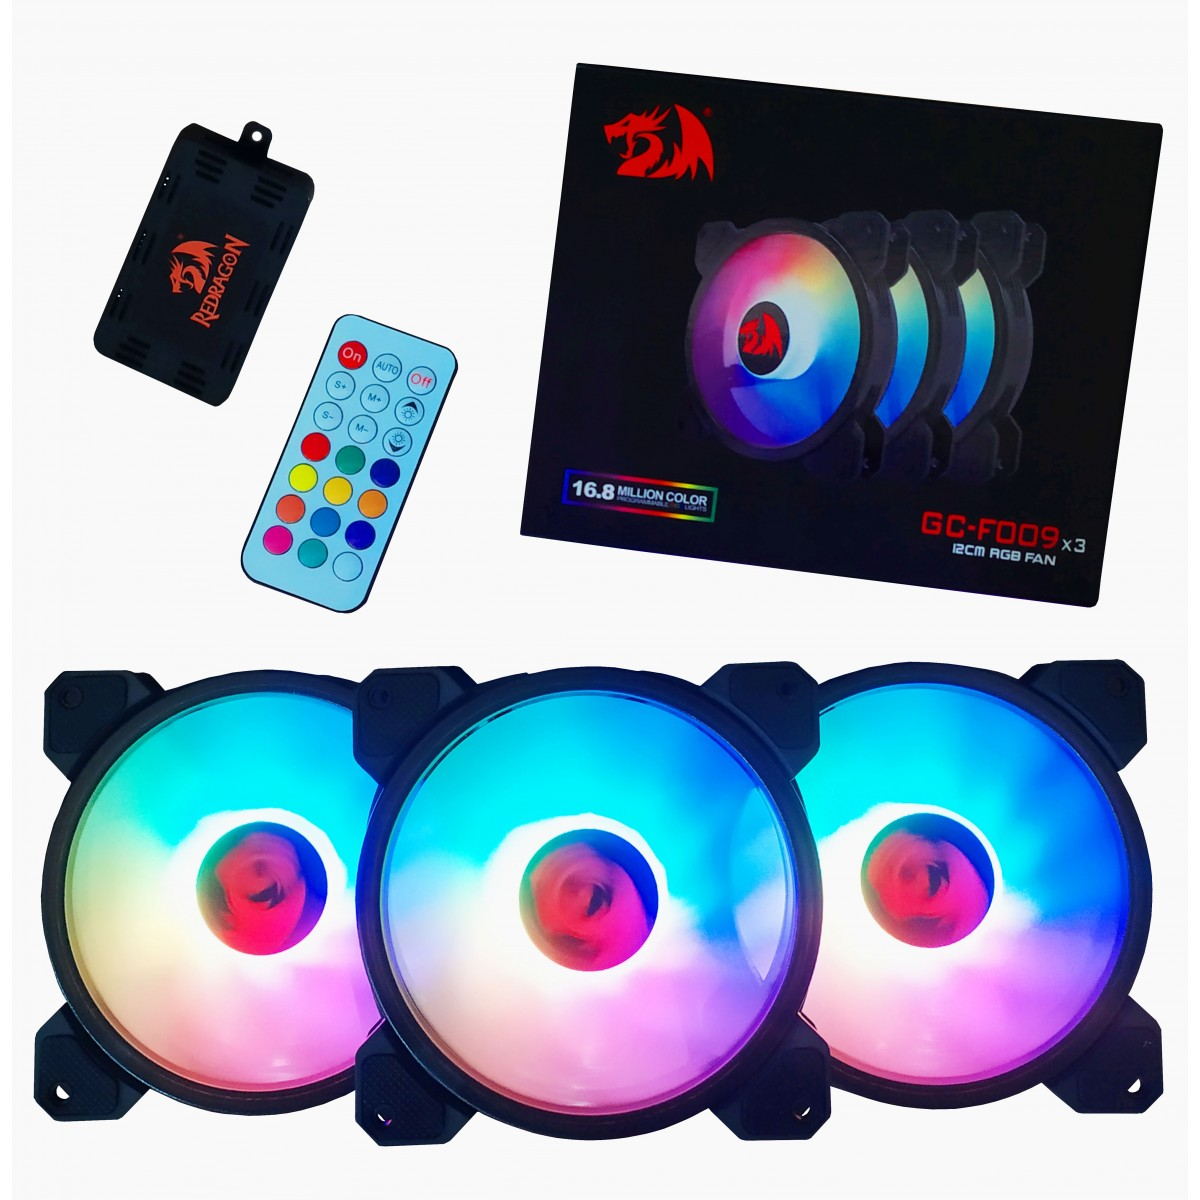 Kit fan com 3 unidades Redragon, RGB, 120mm, Com Controladora, GC-F009